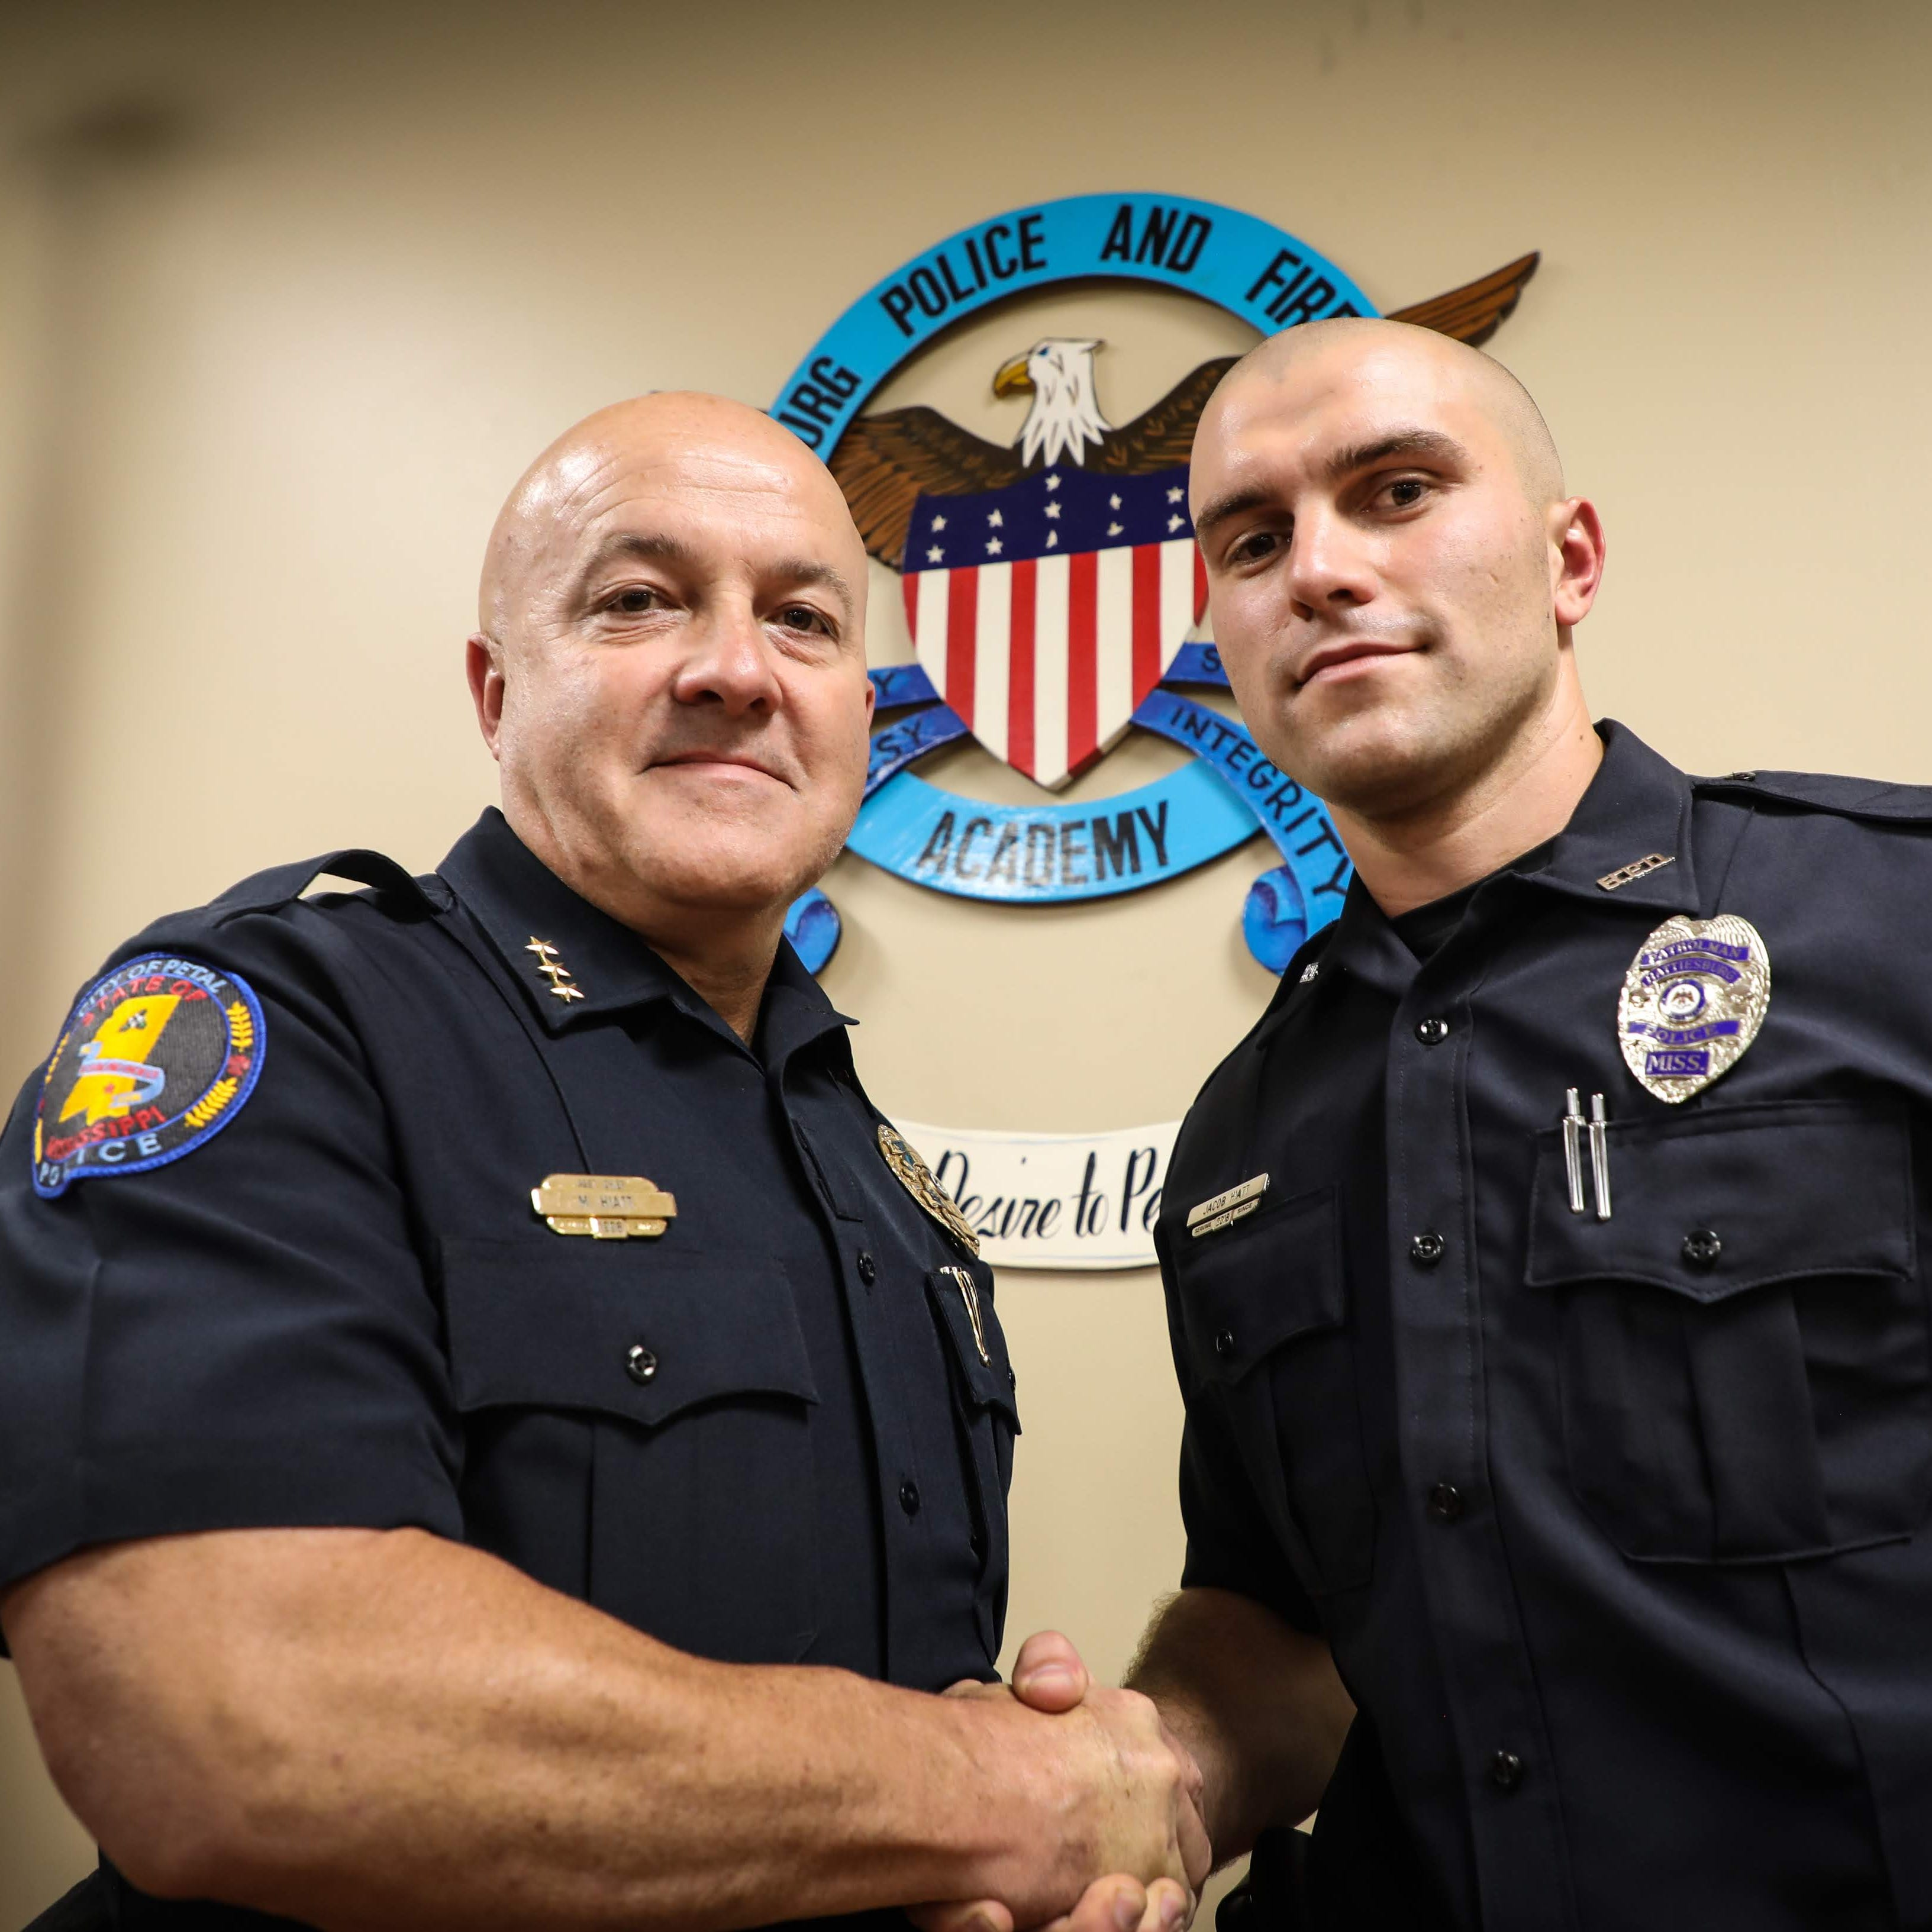 Blue Bloods: Son follows father's footsteps, becomes police officer